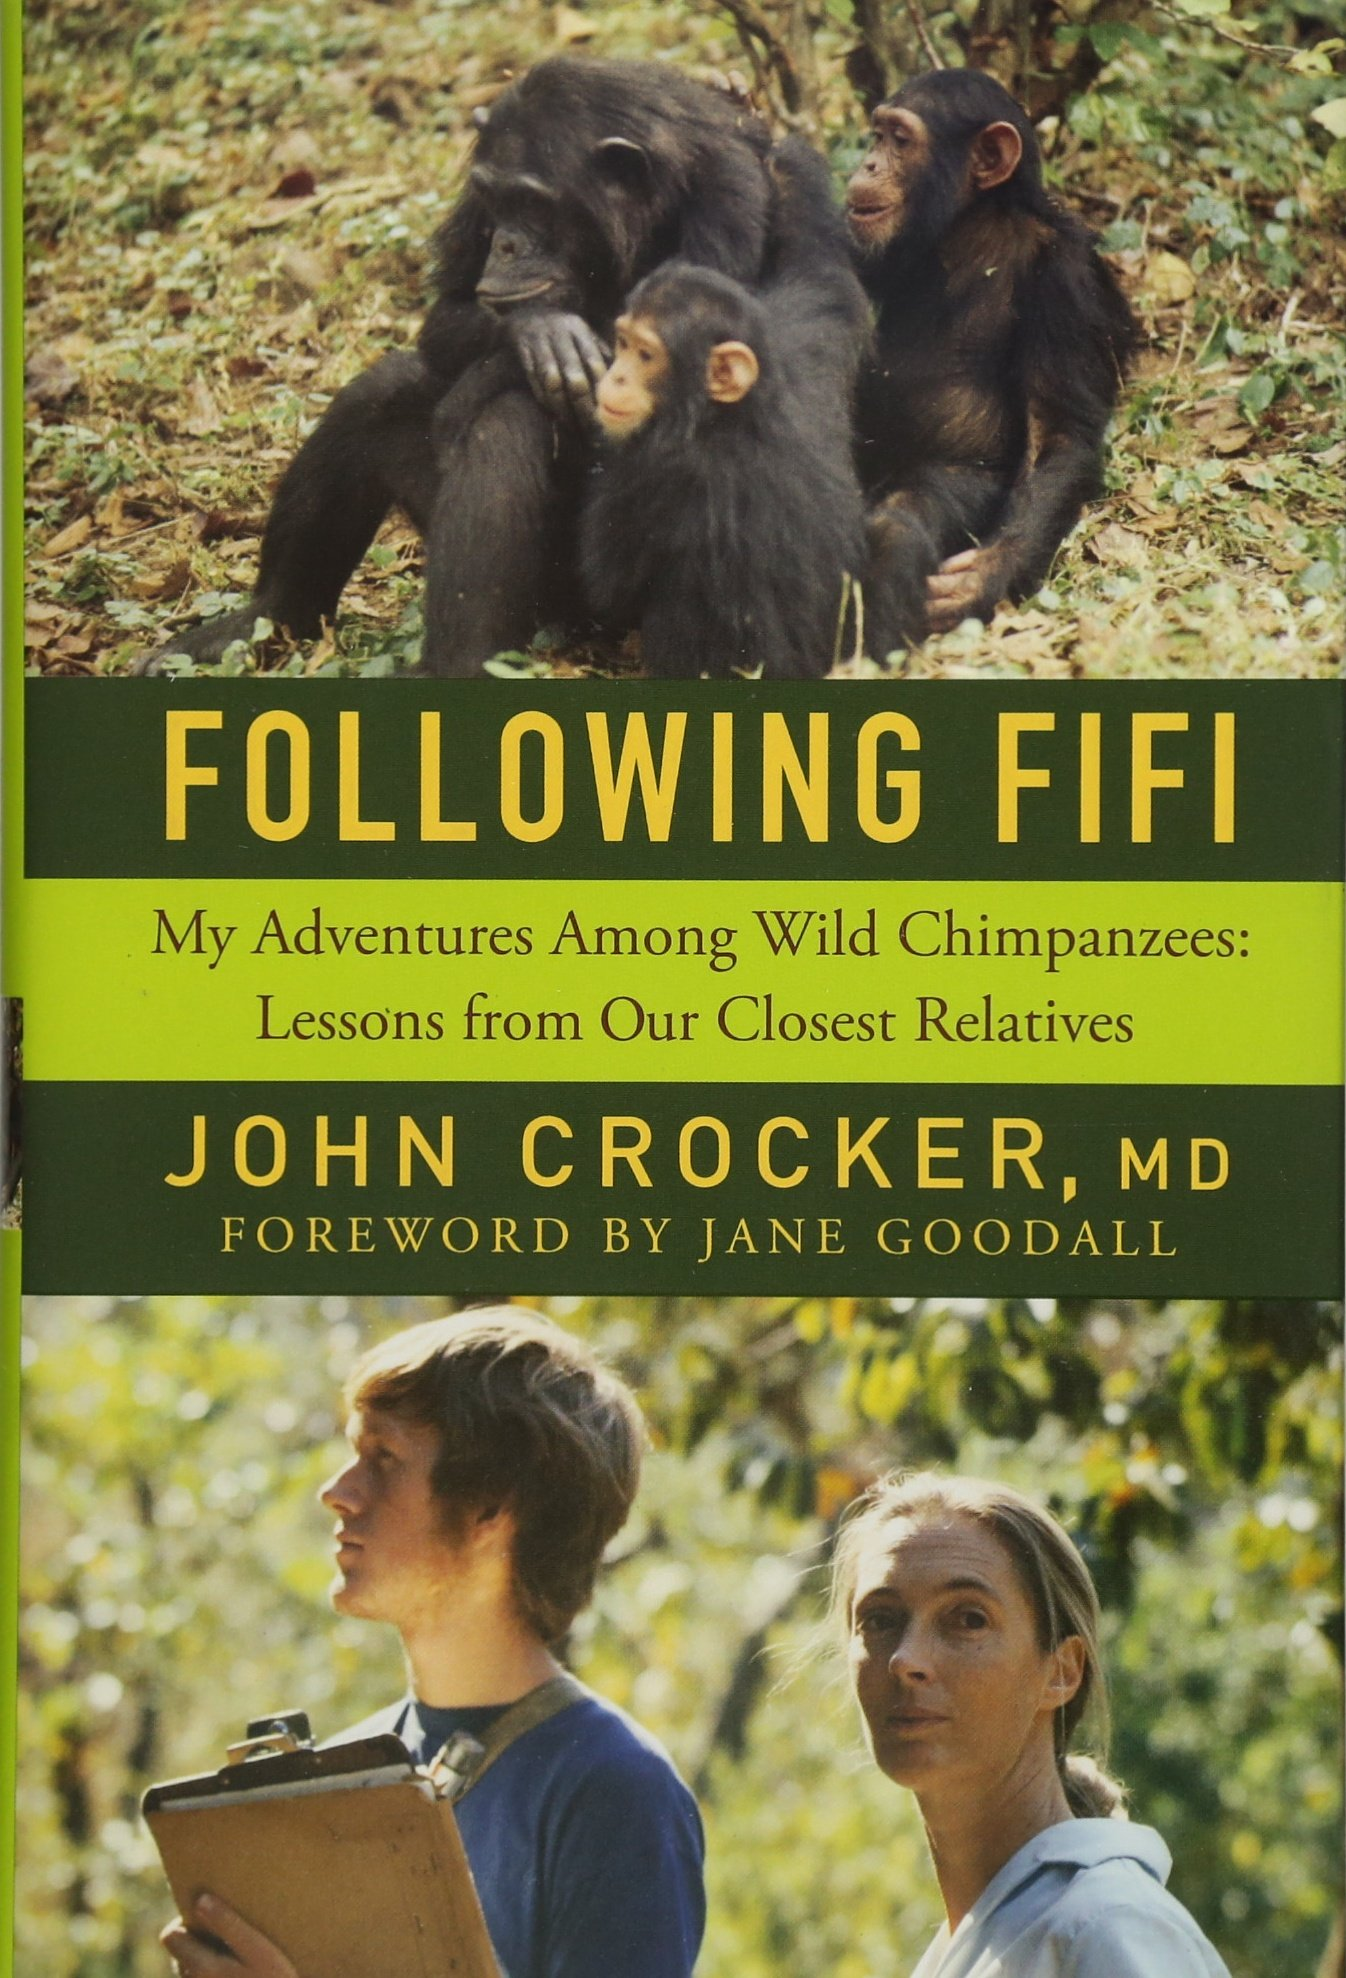 Following Fifi: My Adventures Among Wild Chimpanzees: Lessons from our Closest Relatives